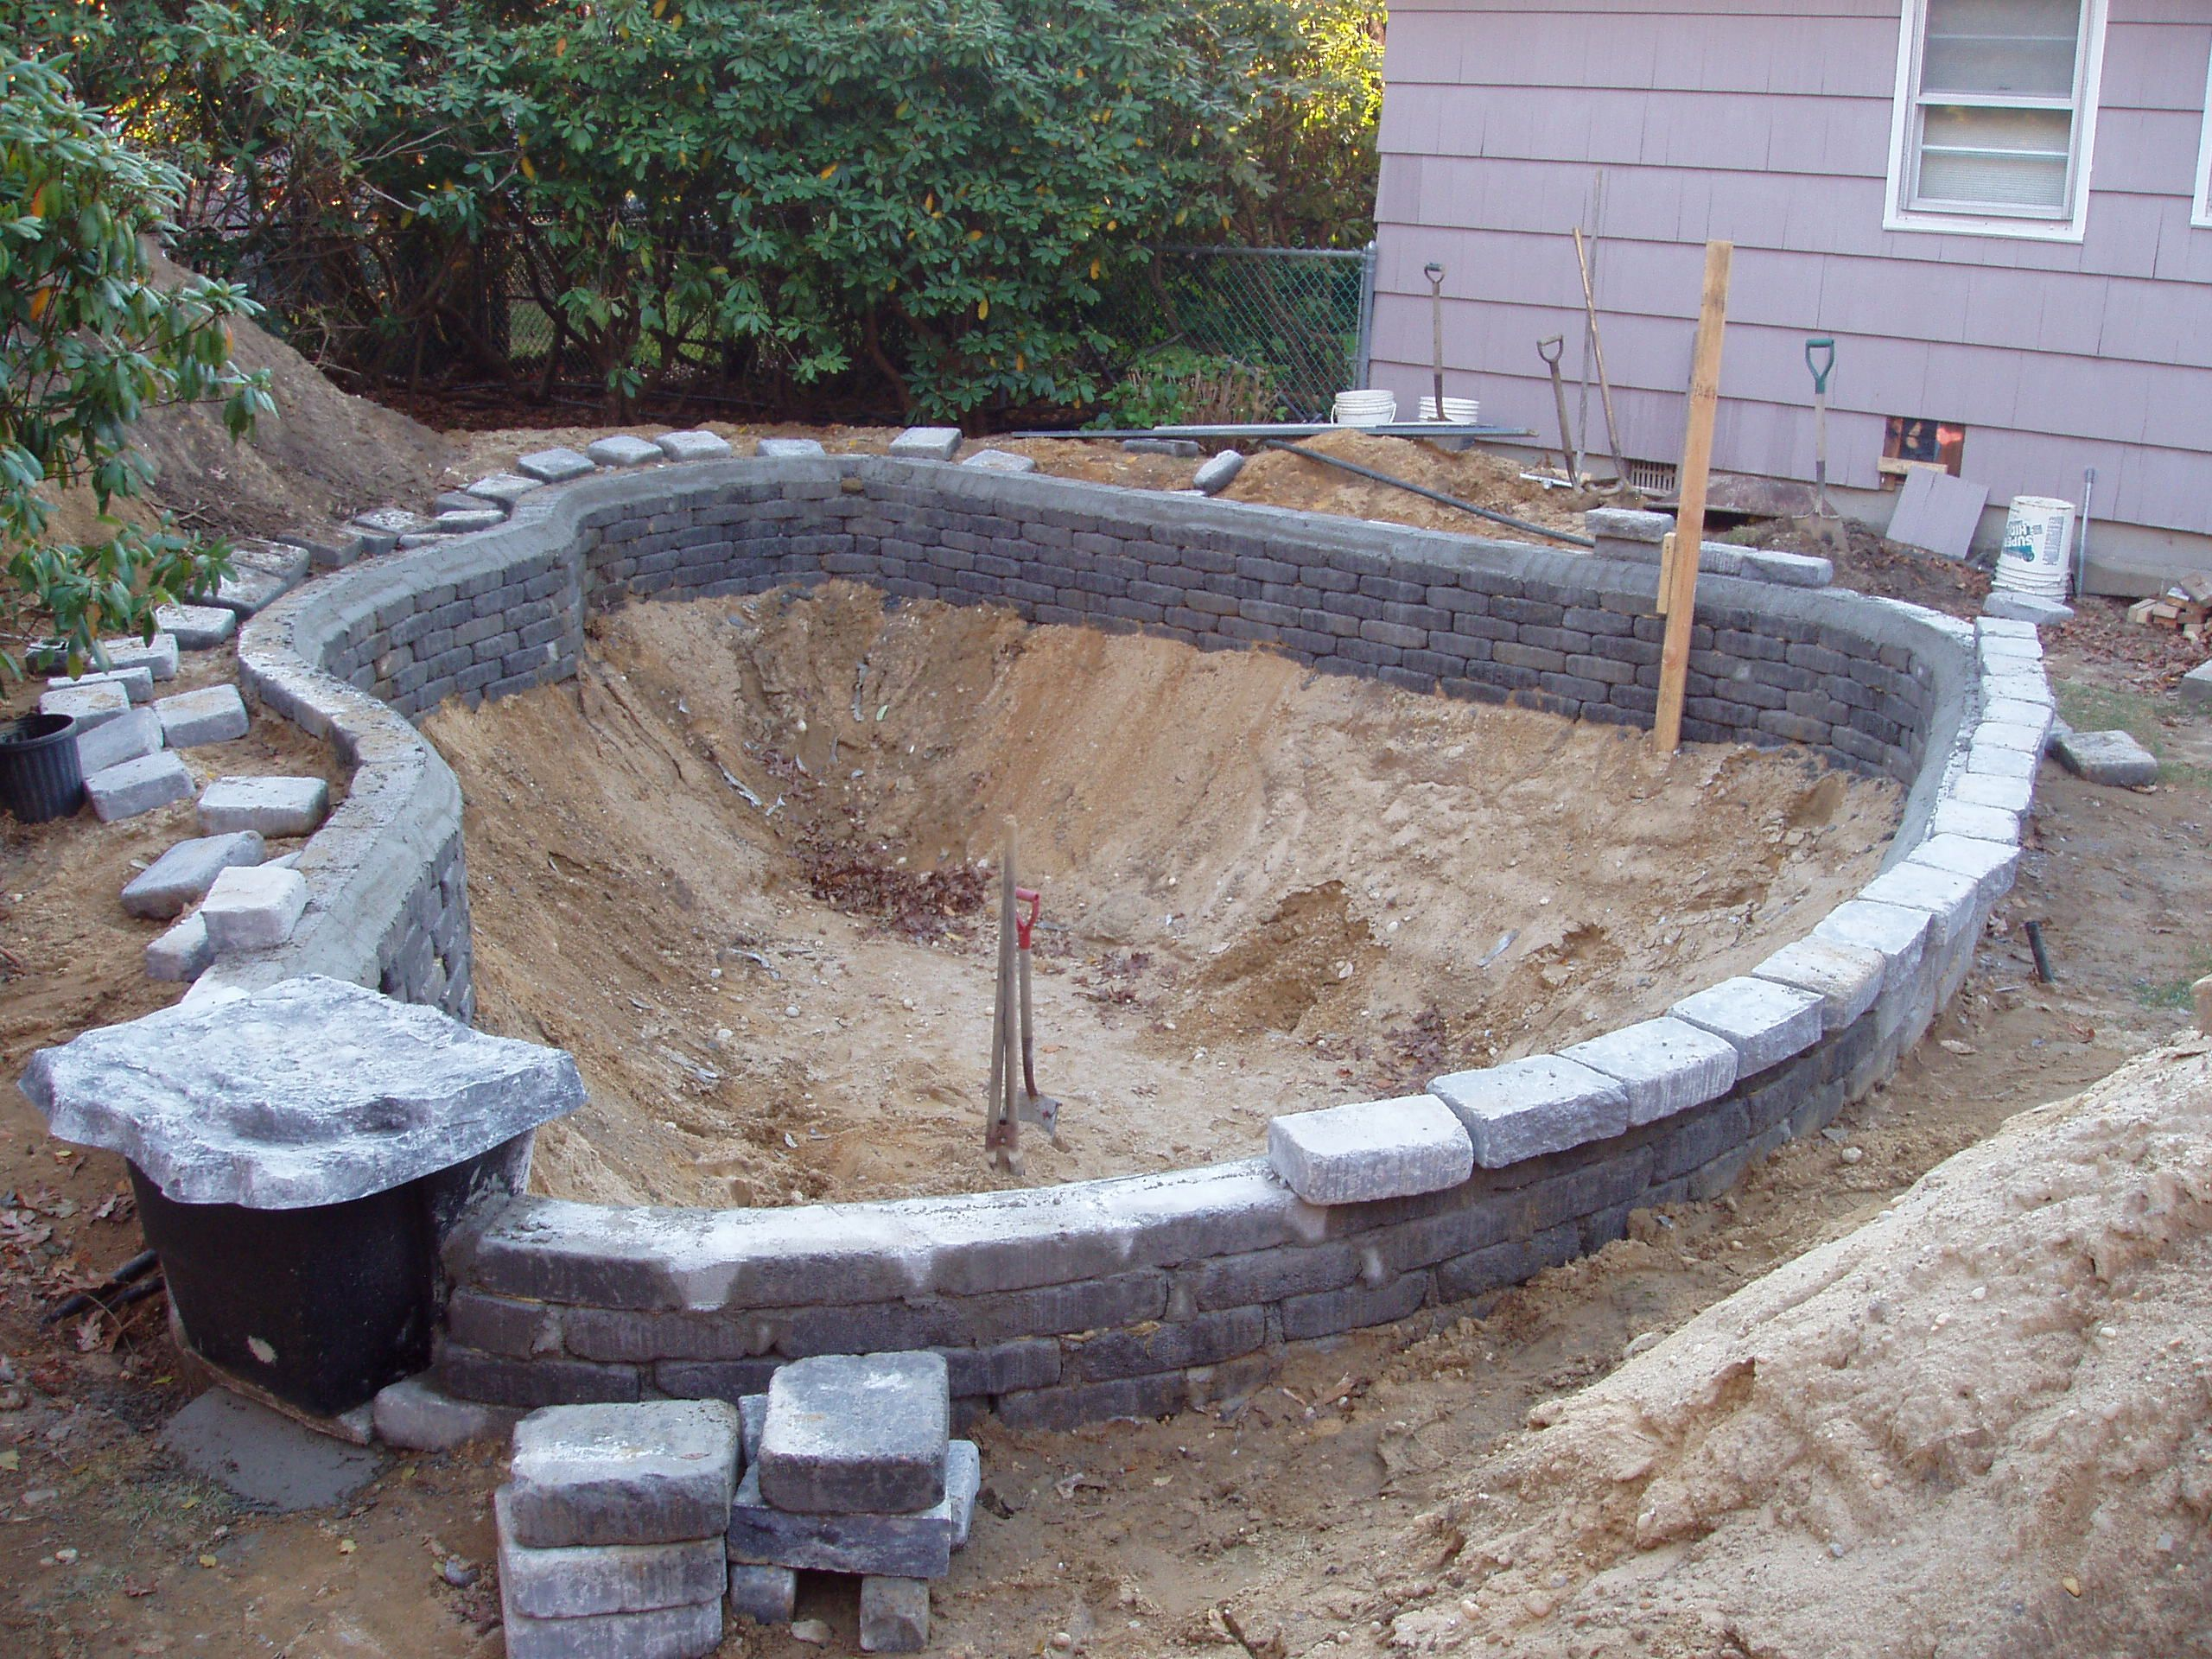 Pond design and construction google search aquaponics for Fish pond design